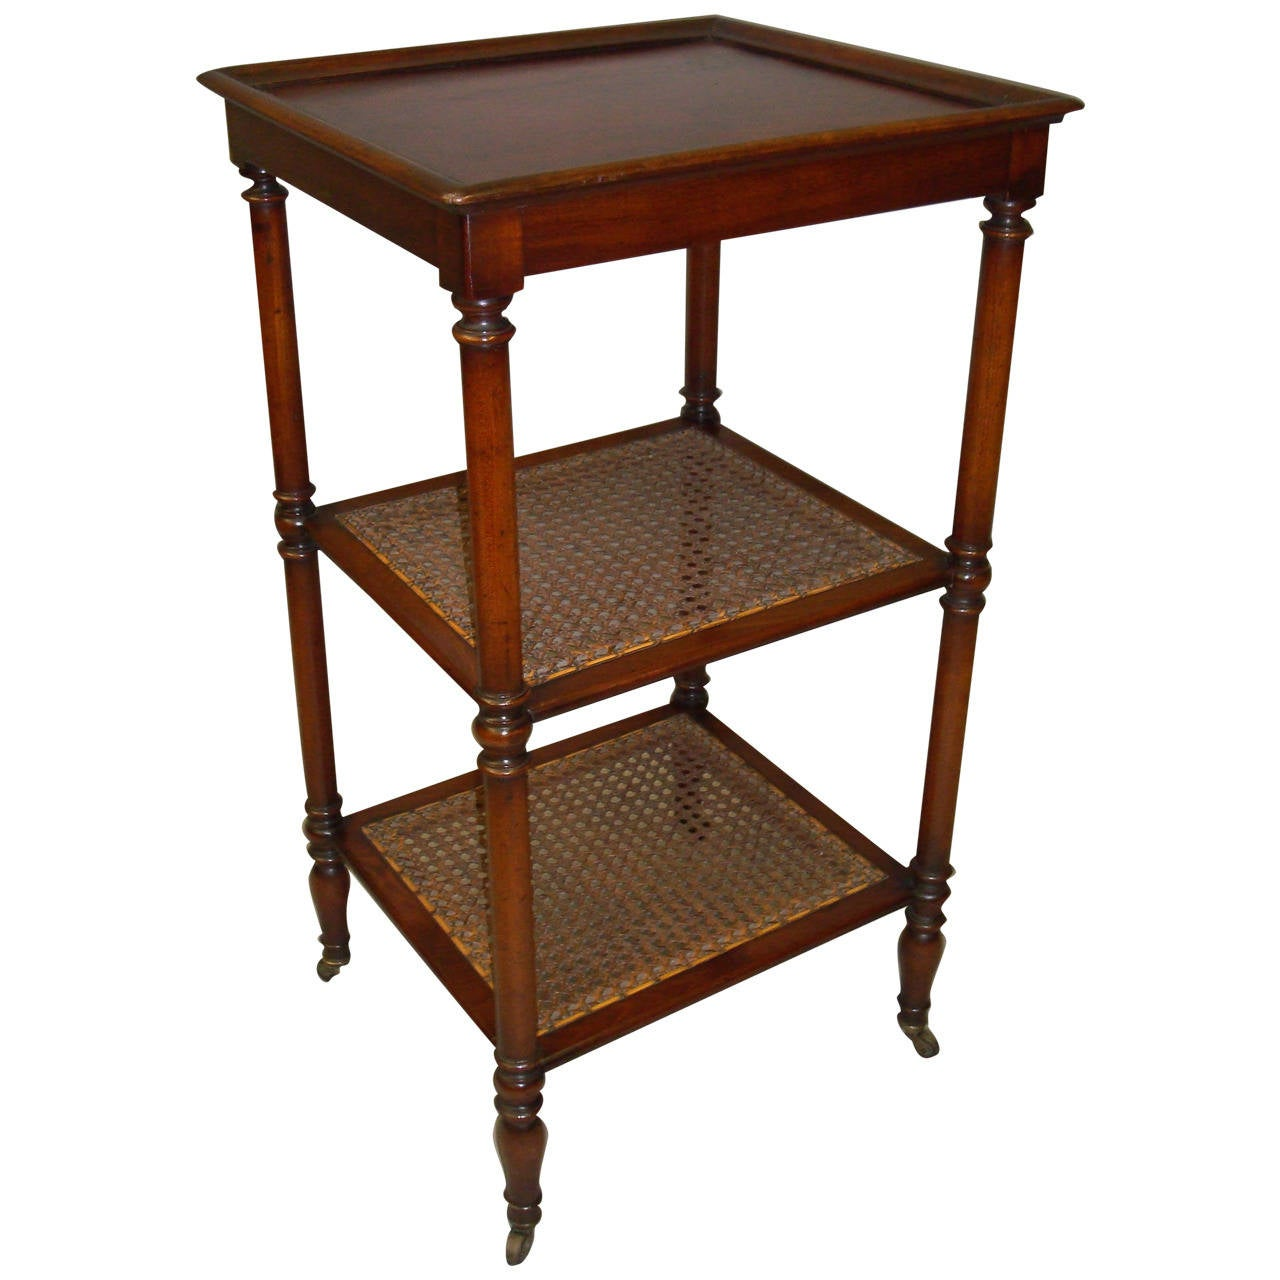 regency mahogany three tier tag re for sale at 1stdibs. Black Bedroom Furniture Sets. Home Design Ideas